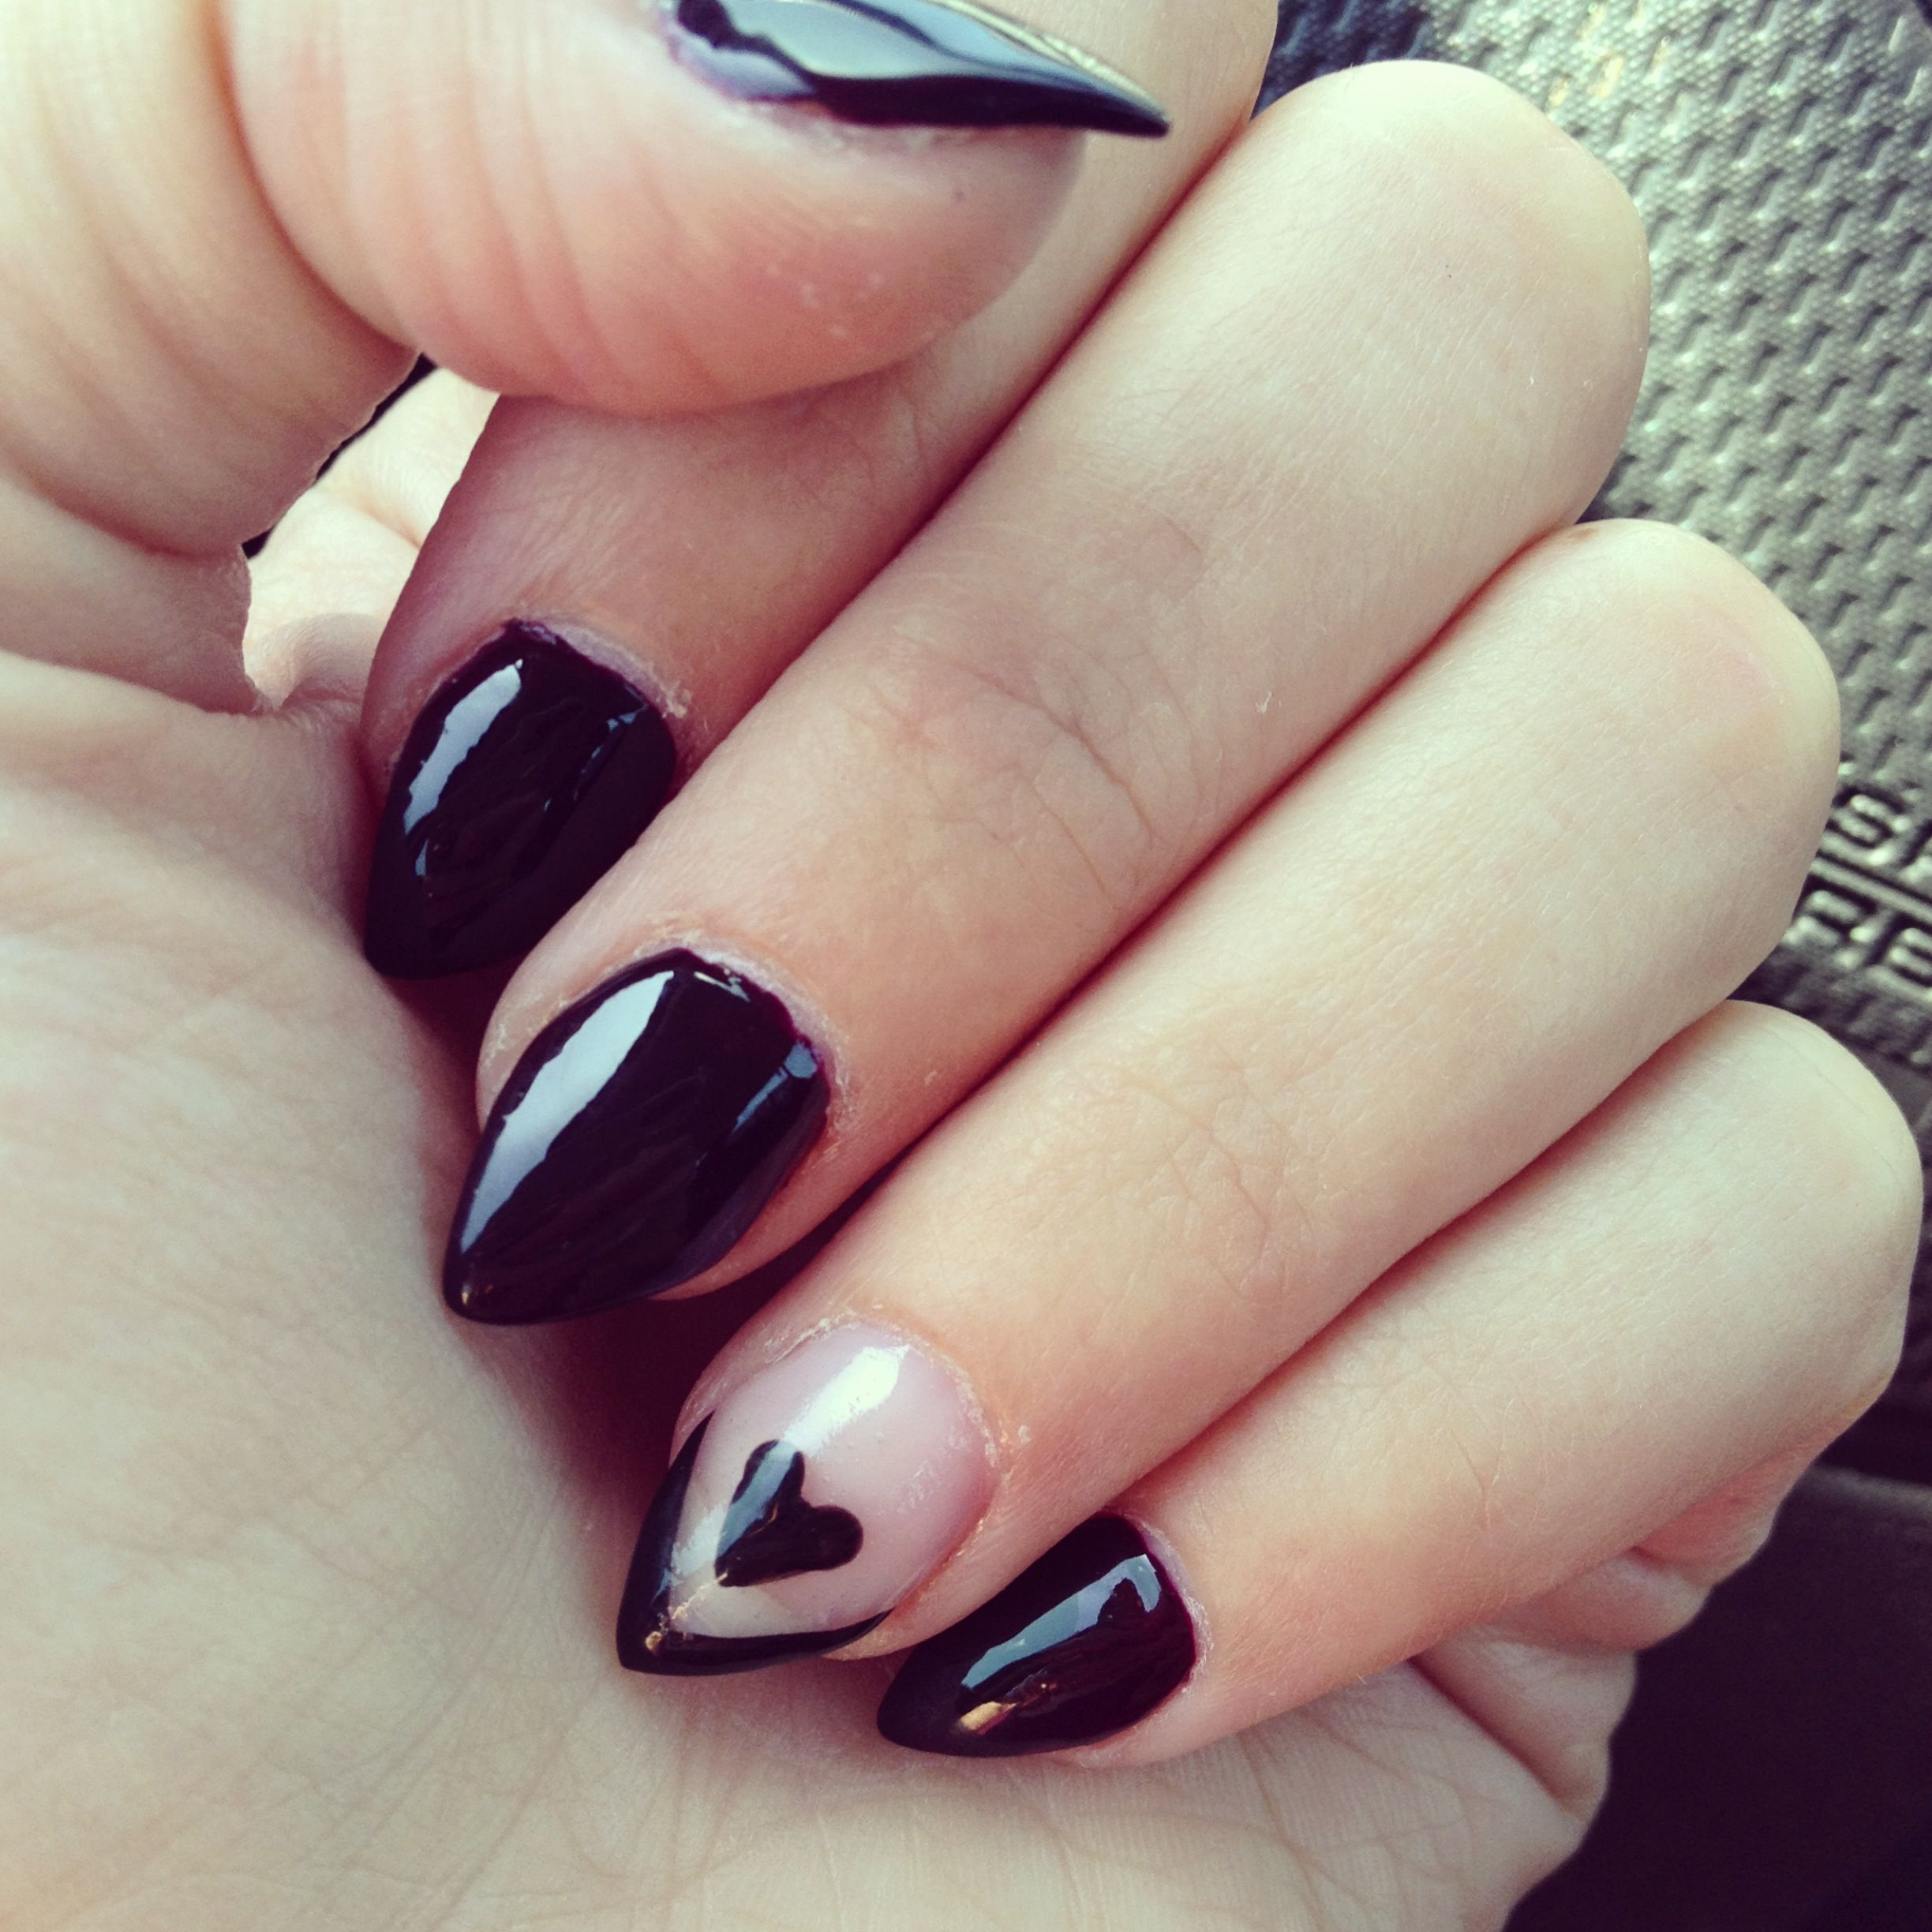 New Claws Short Pointed Nails I M Really Starting To Like This Goth Nails Pointed Nails Pointy Nails